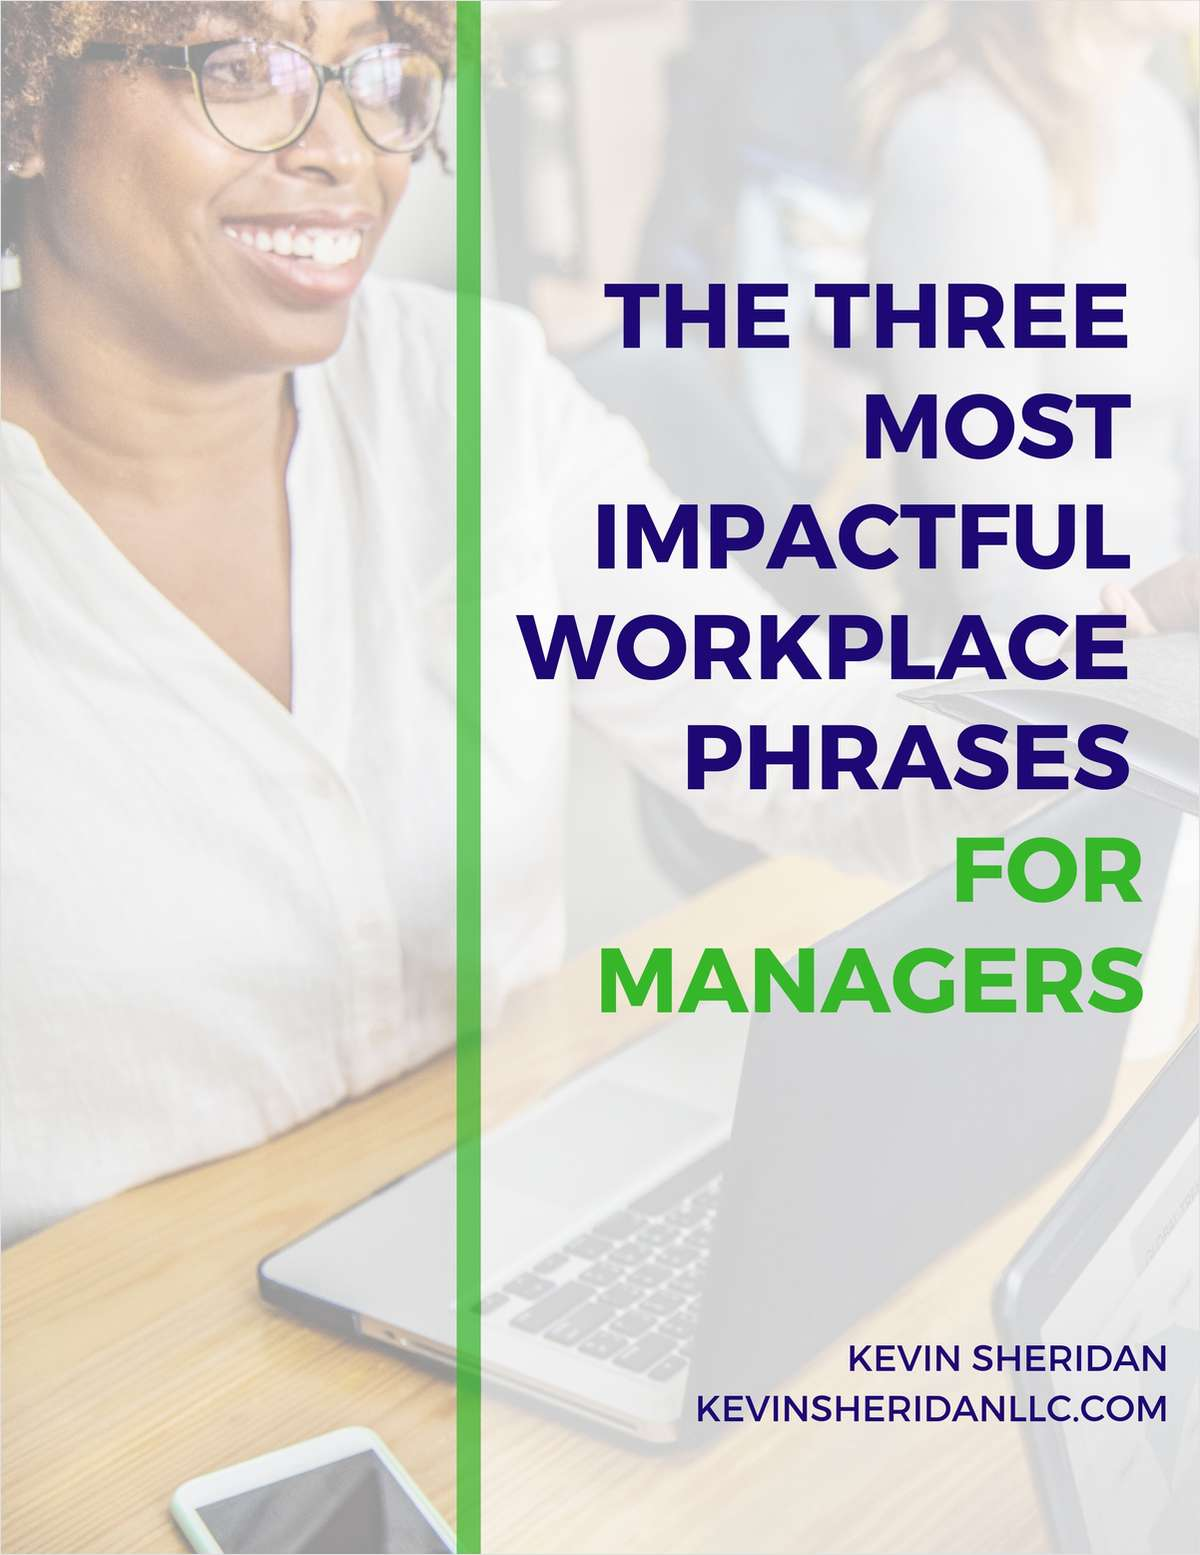 The Three Most Impactful Workplace Phrases for Managers